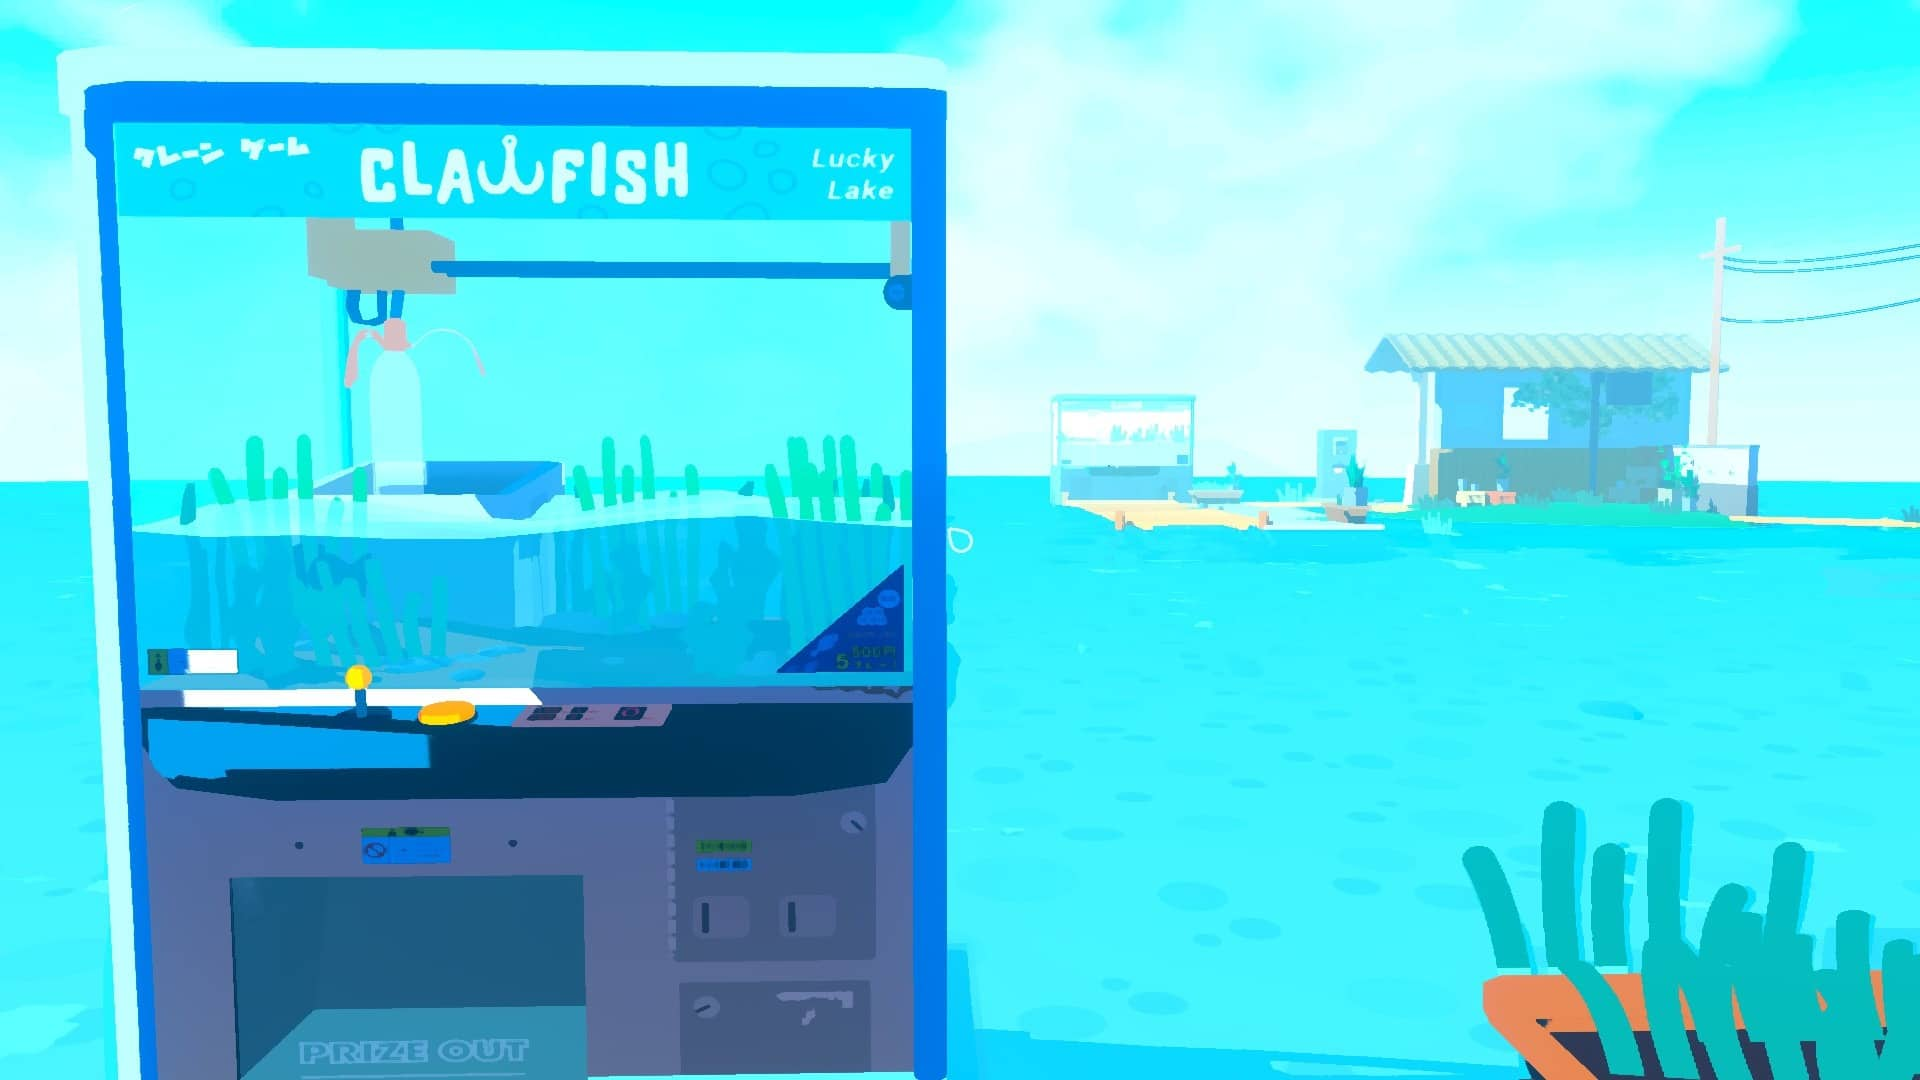 Clawfish - Feature Image